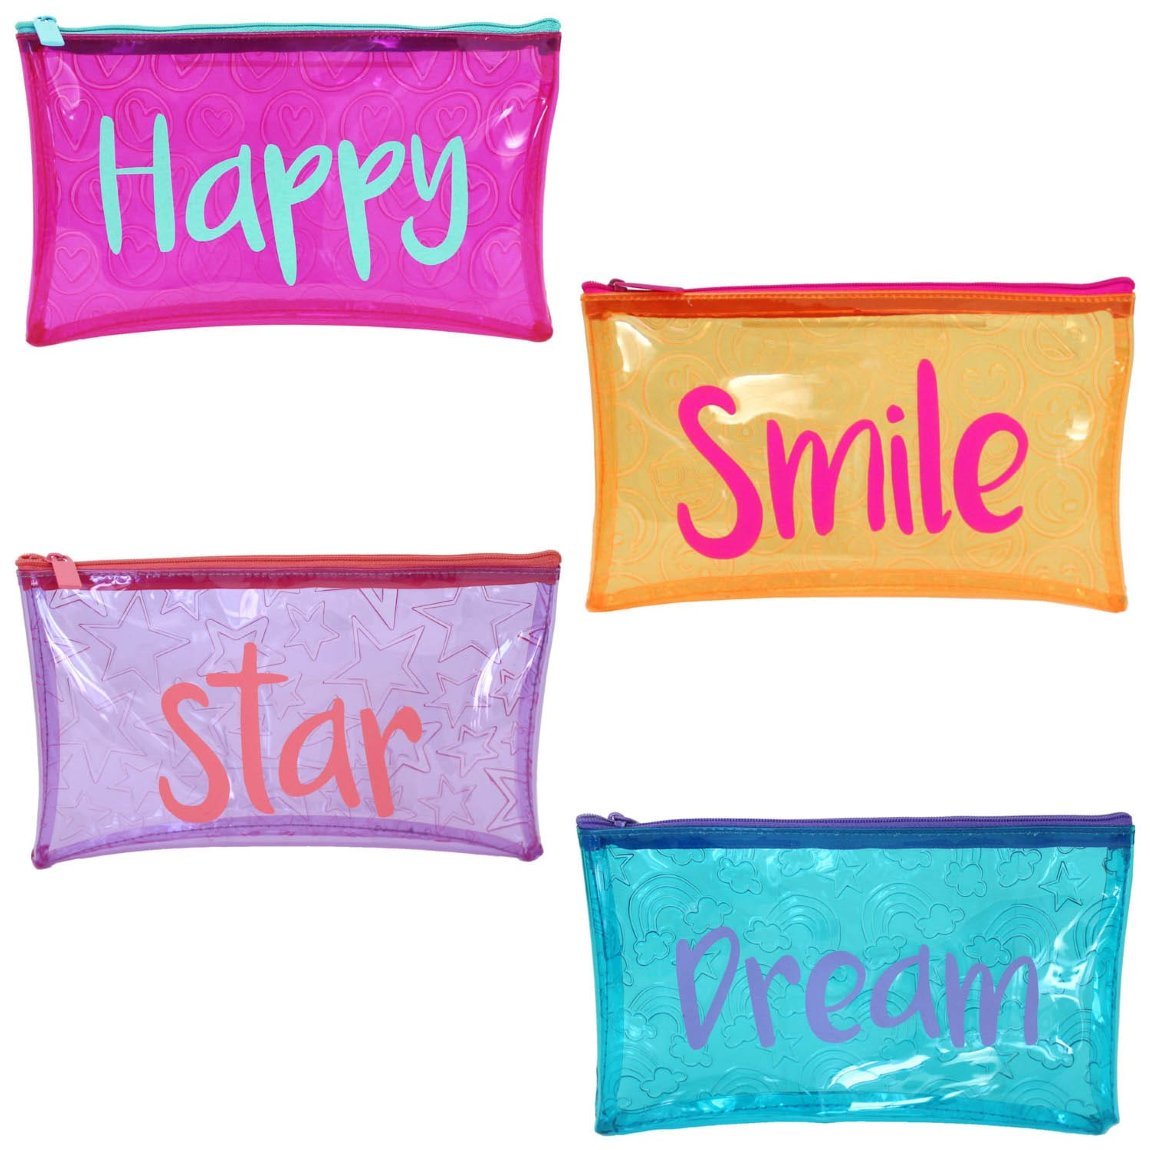 Tinted Embossed PVC Pencil Case - Star